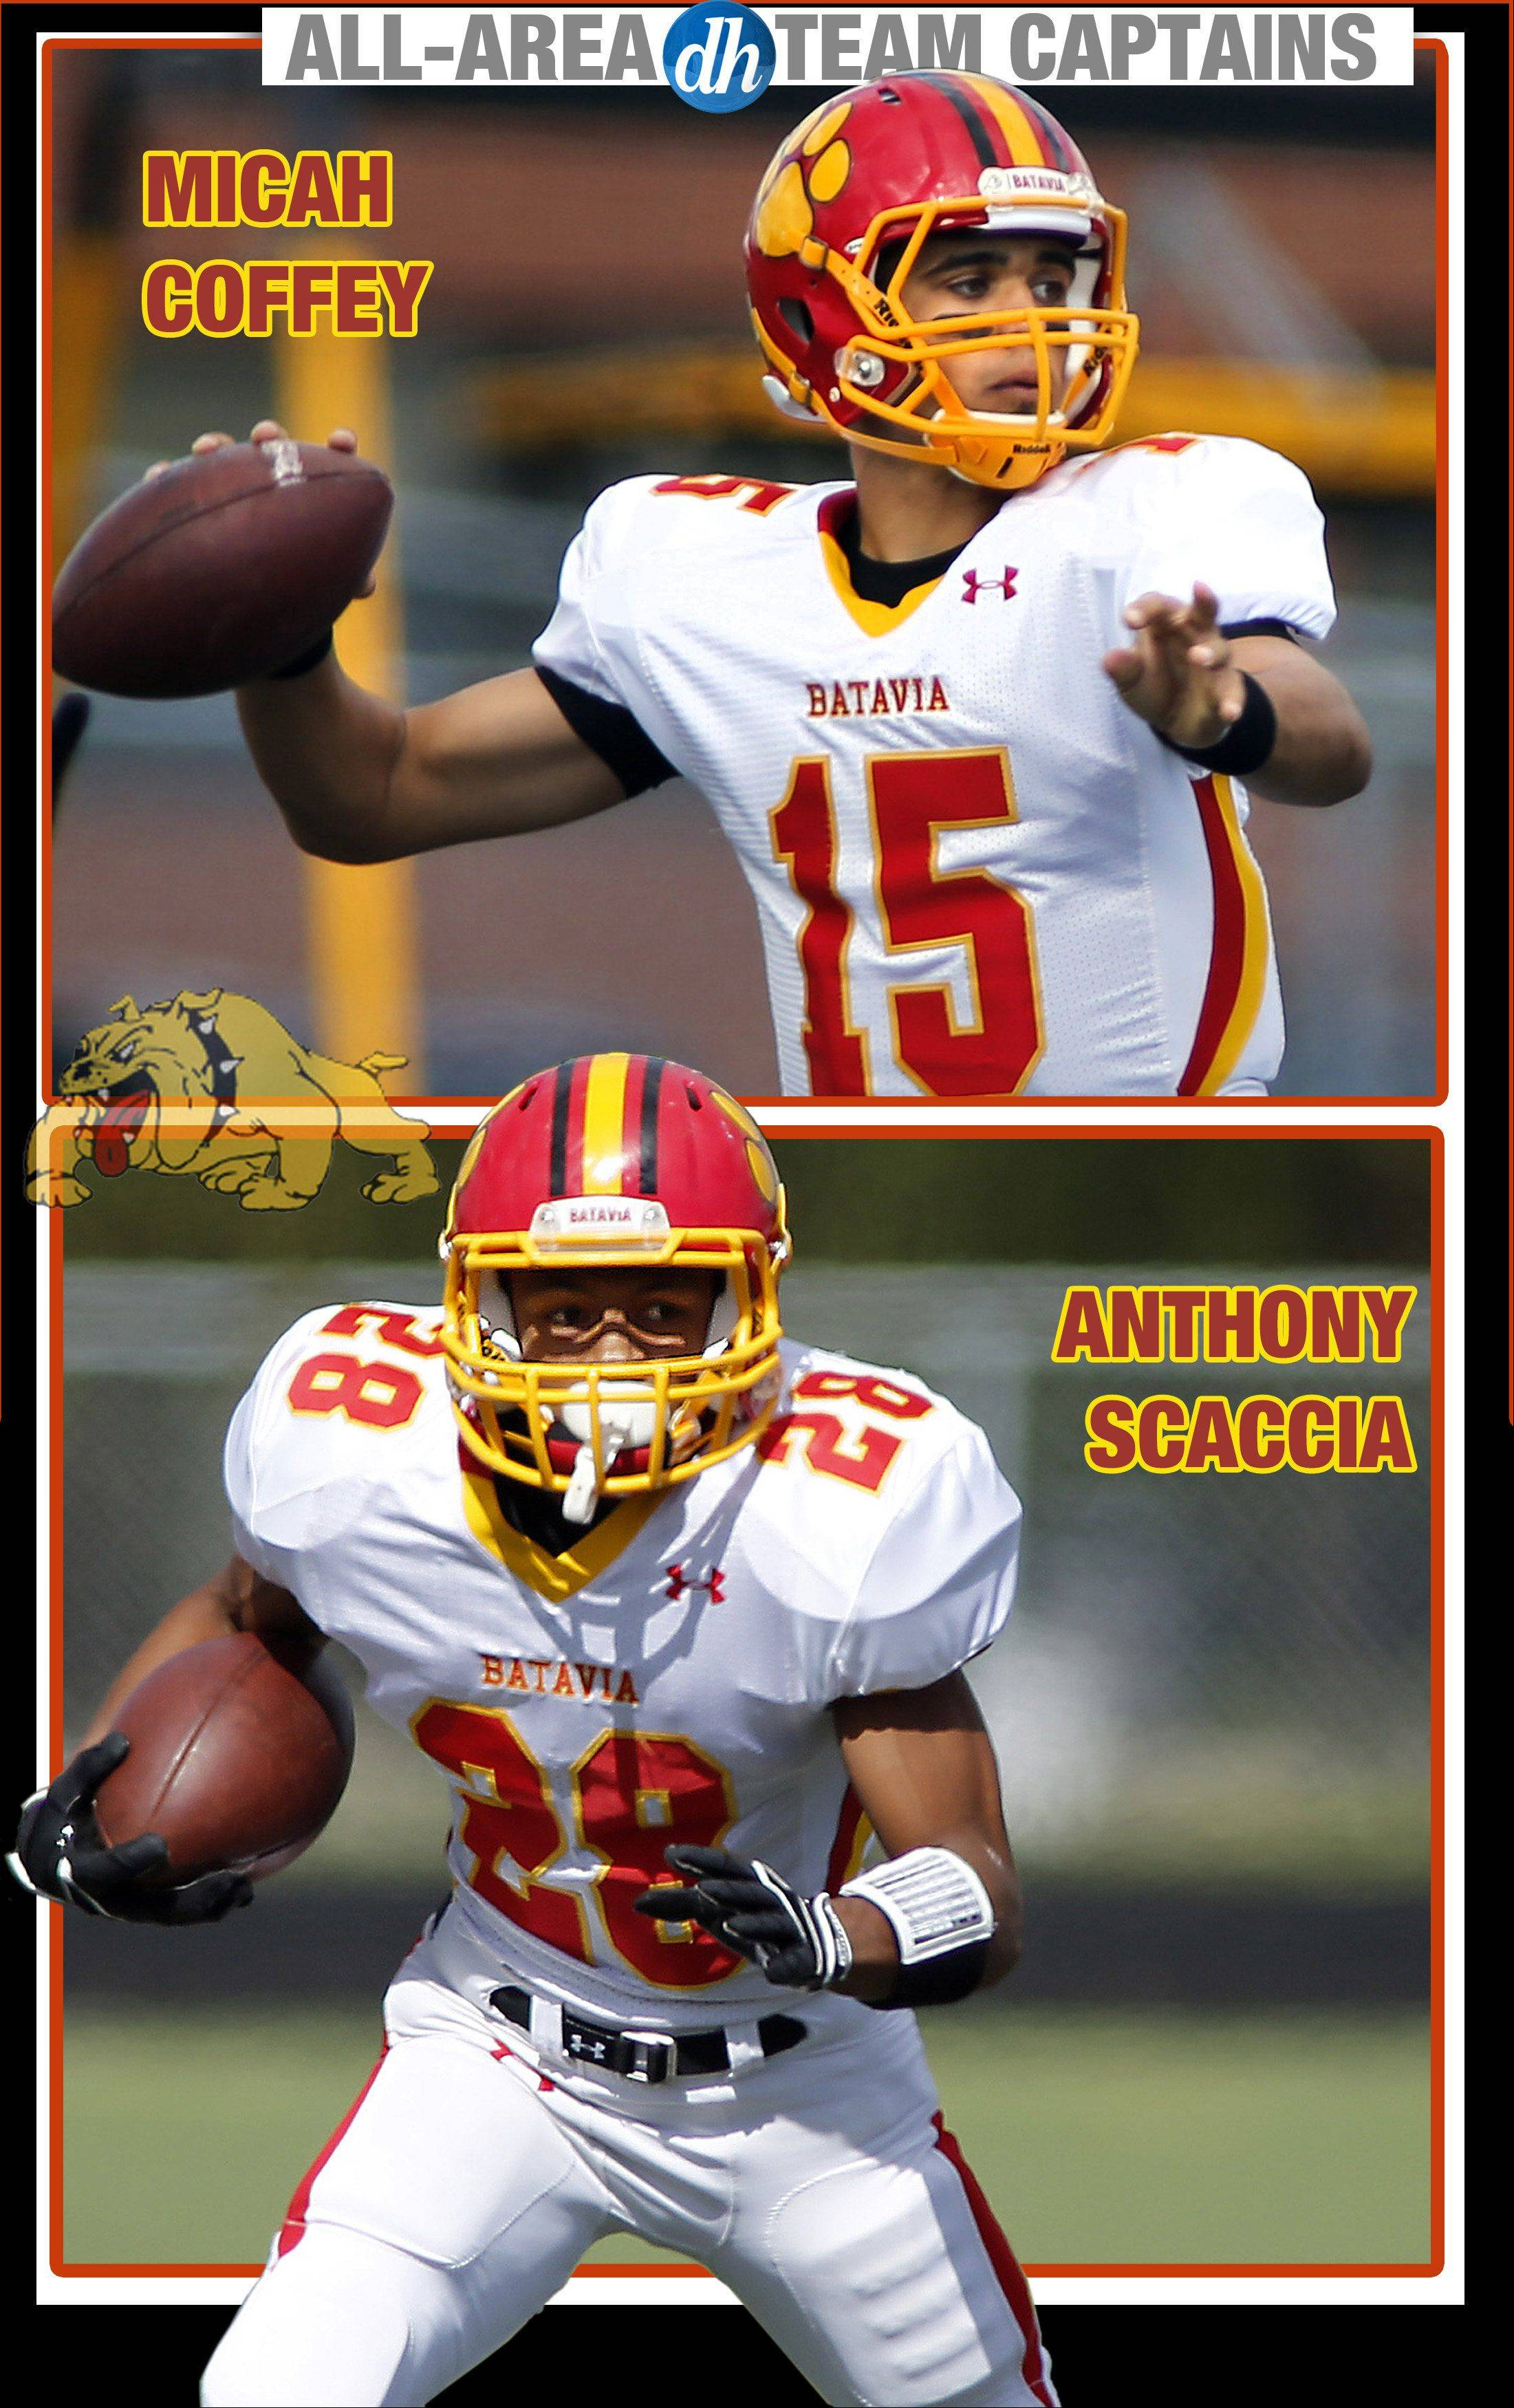 Batavia�s Micah Coffey and Anthony Scaccia are Daily Herald All-Area Team Captains in football.